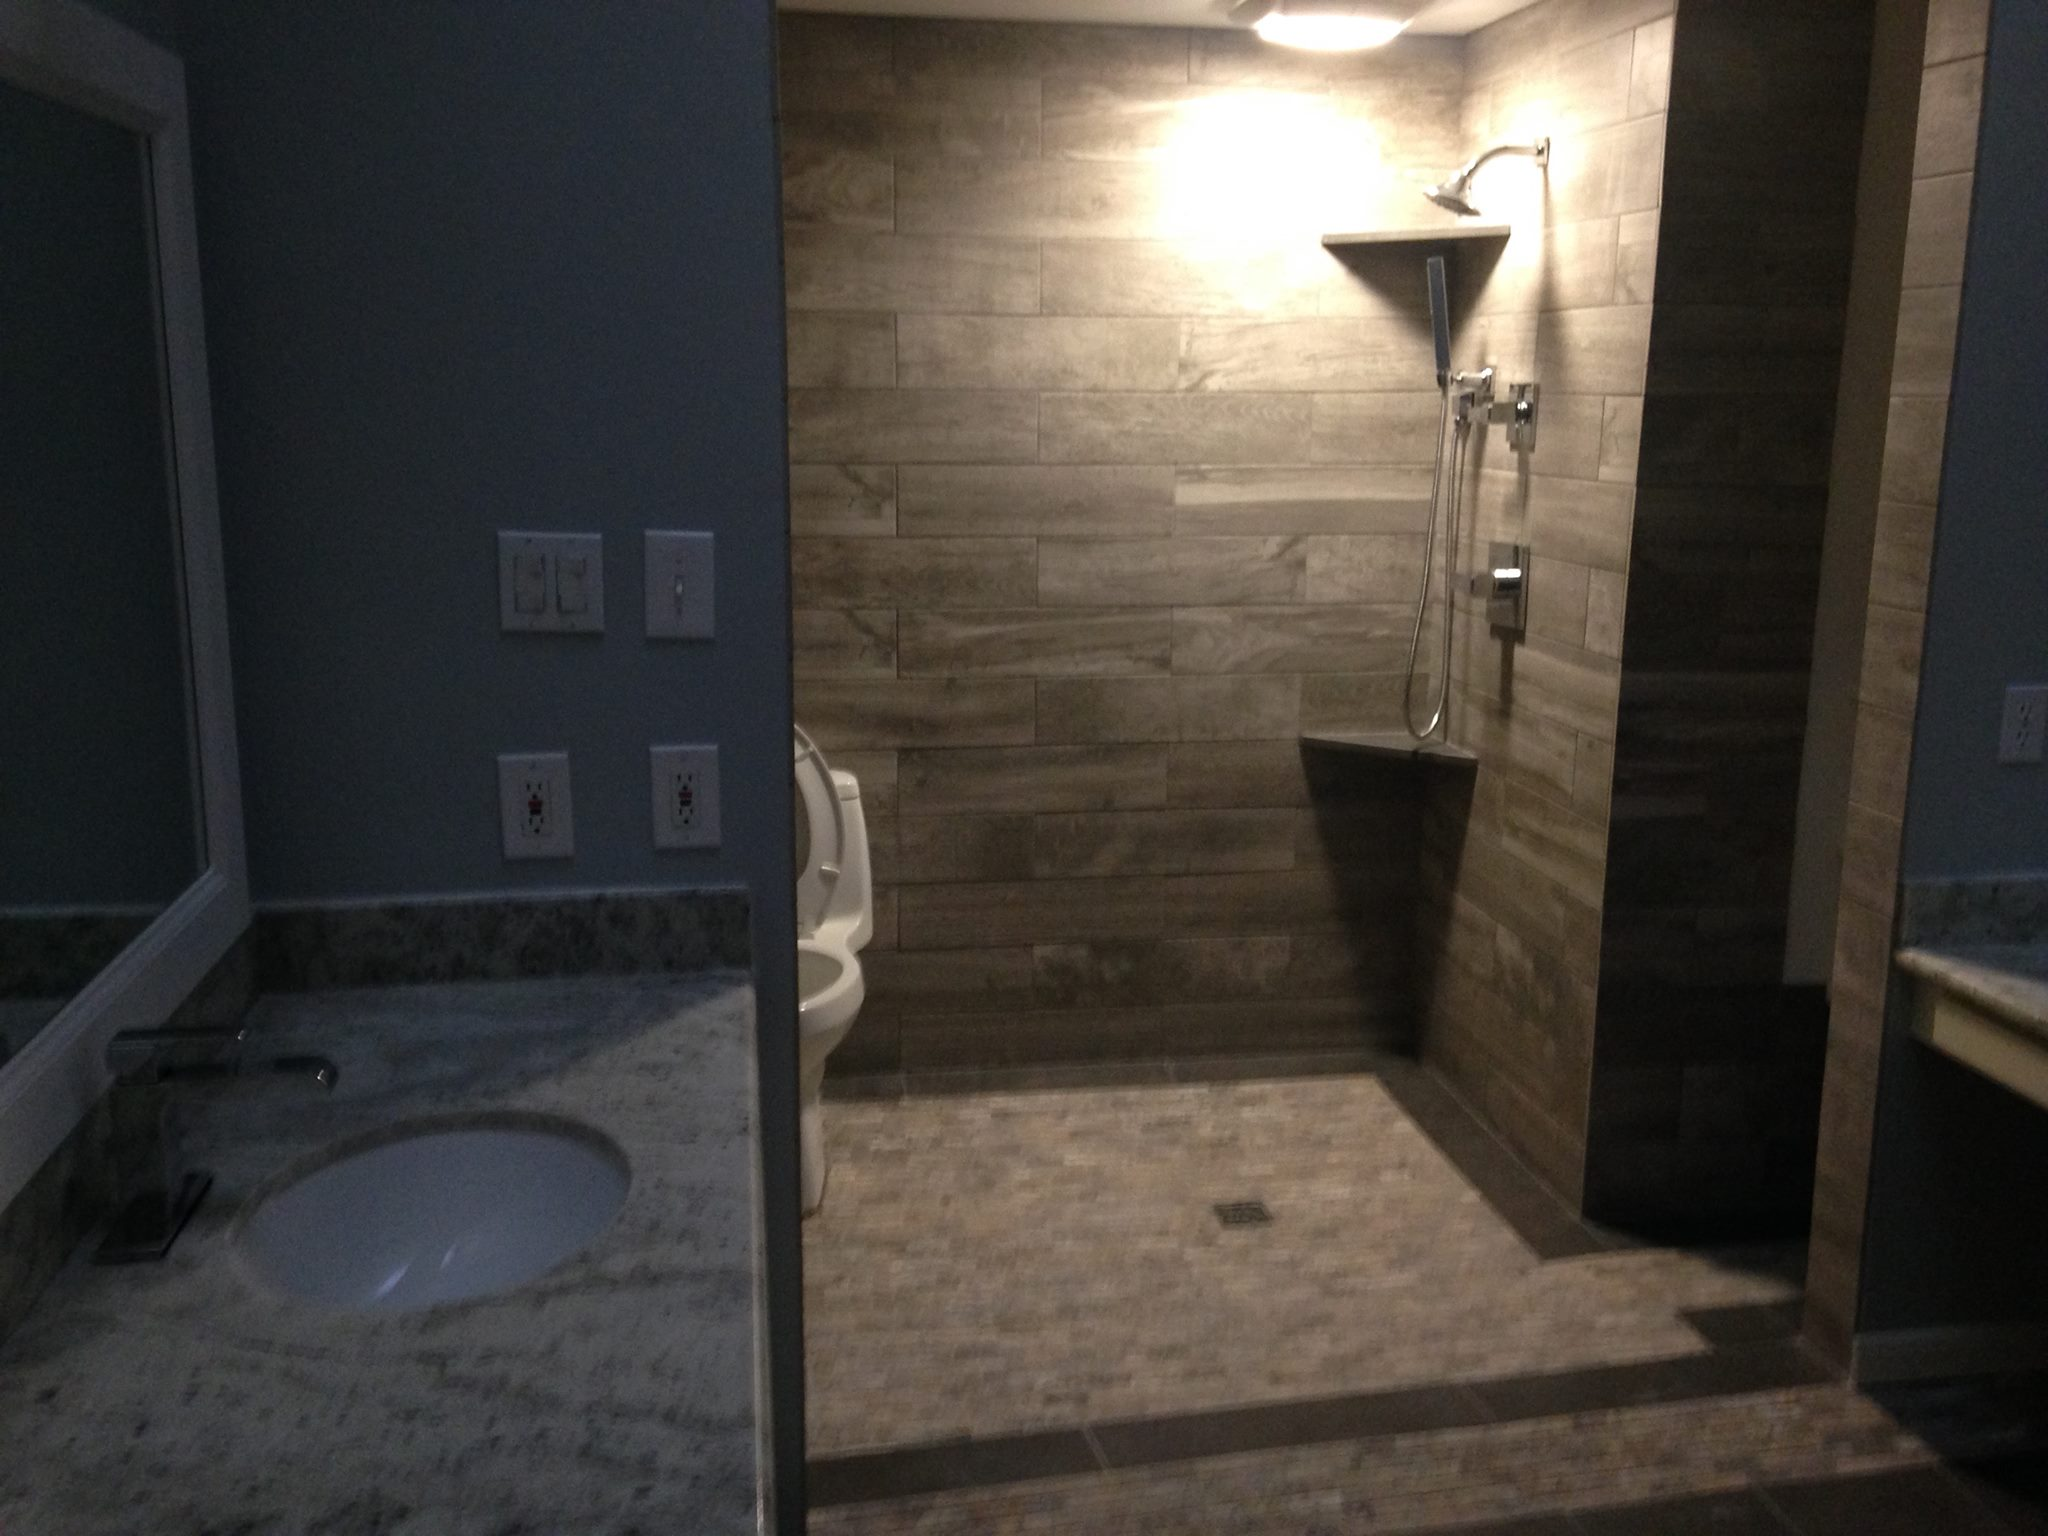 Sugarland Remodeled Shower Space With Downward Slope